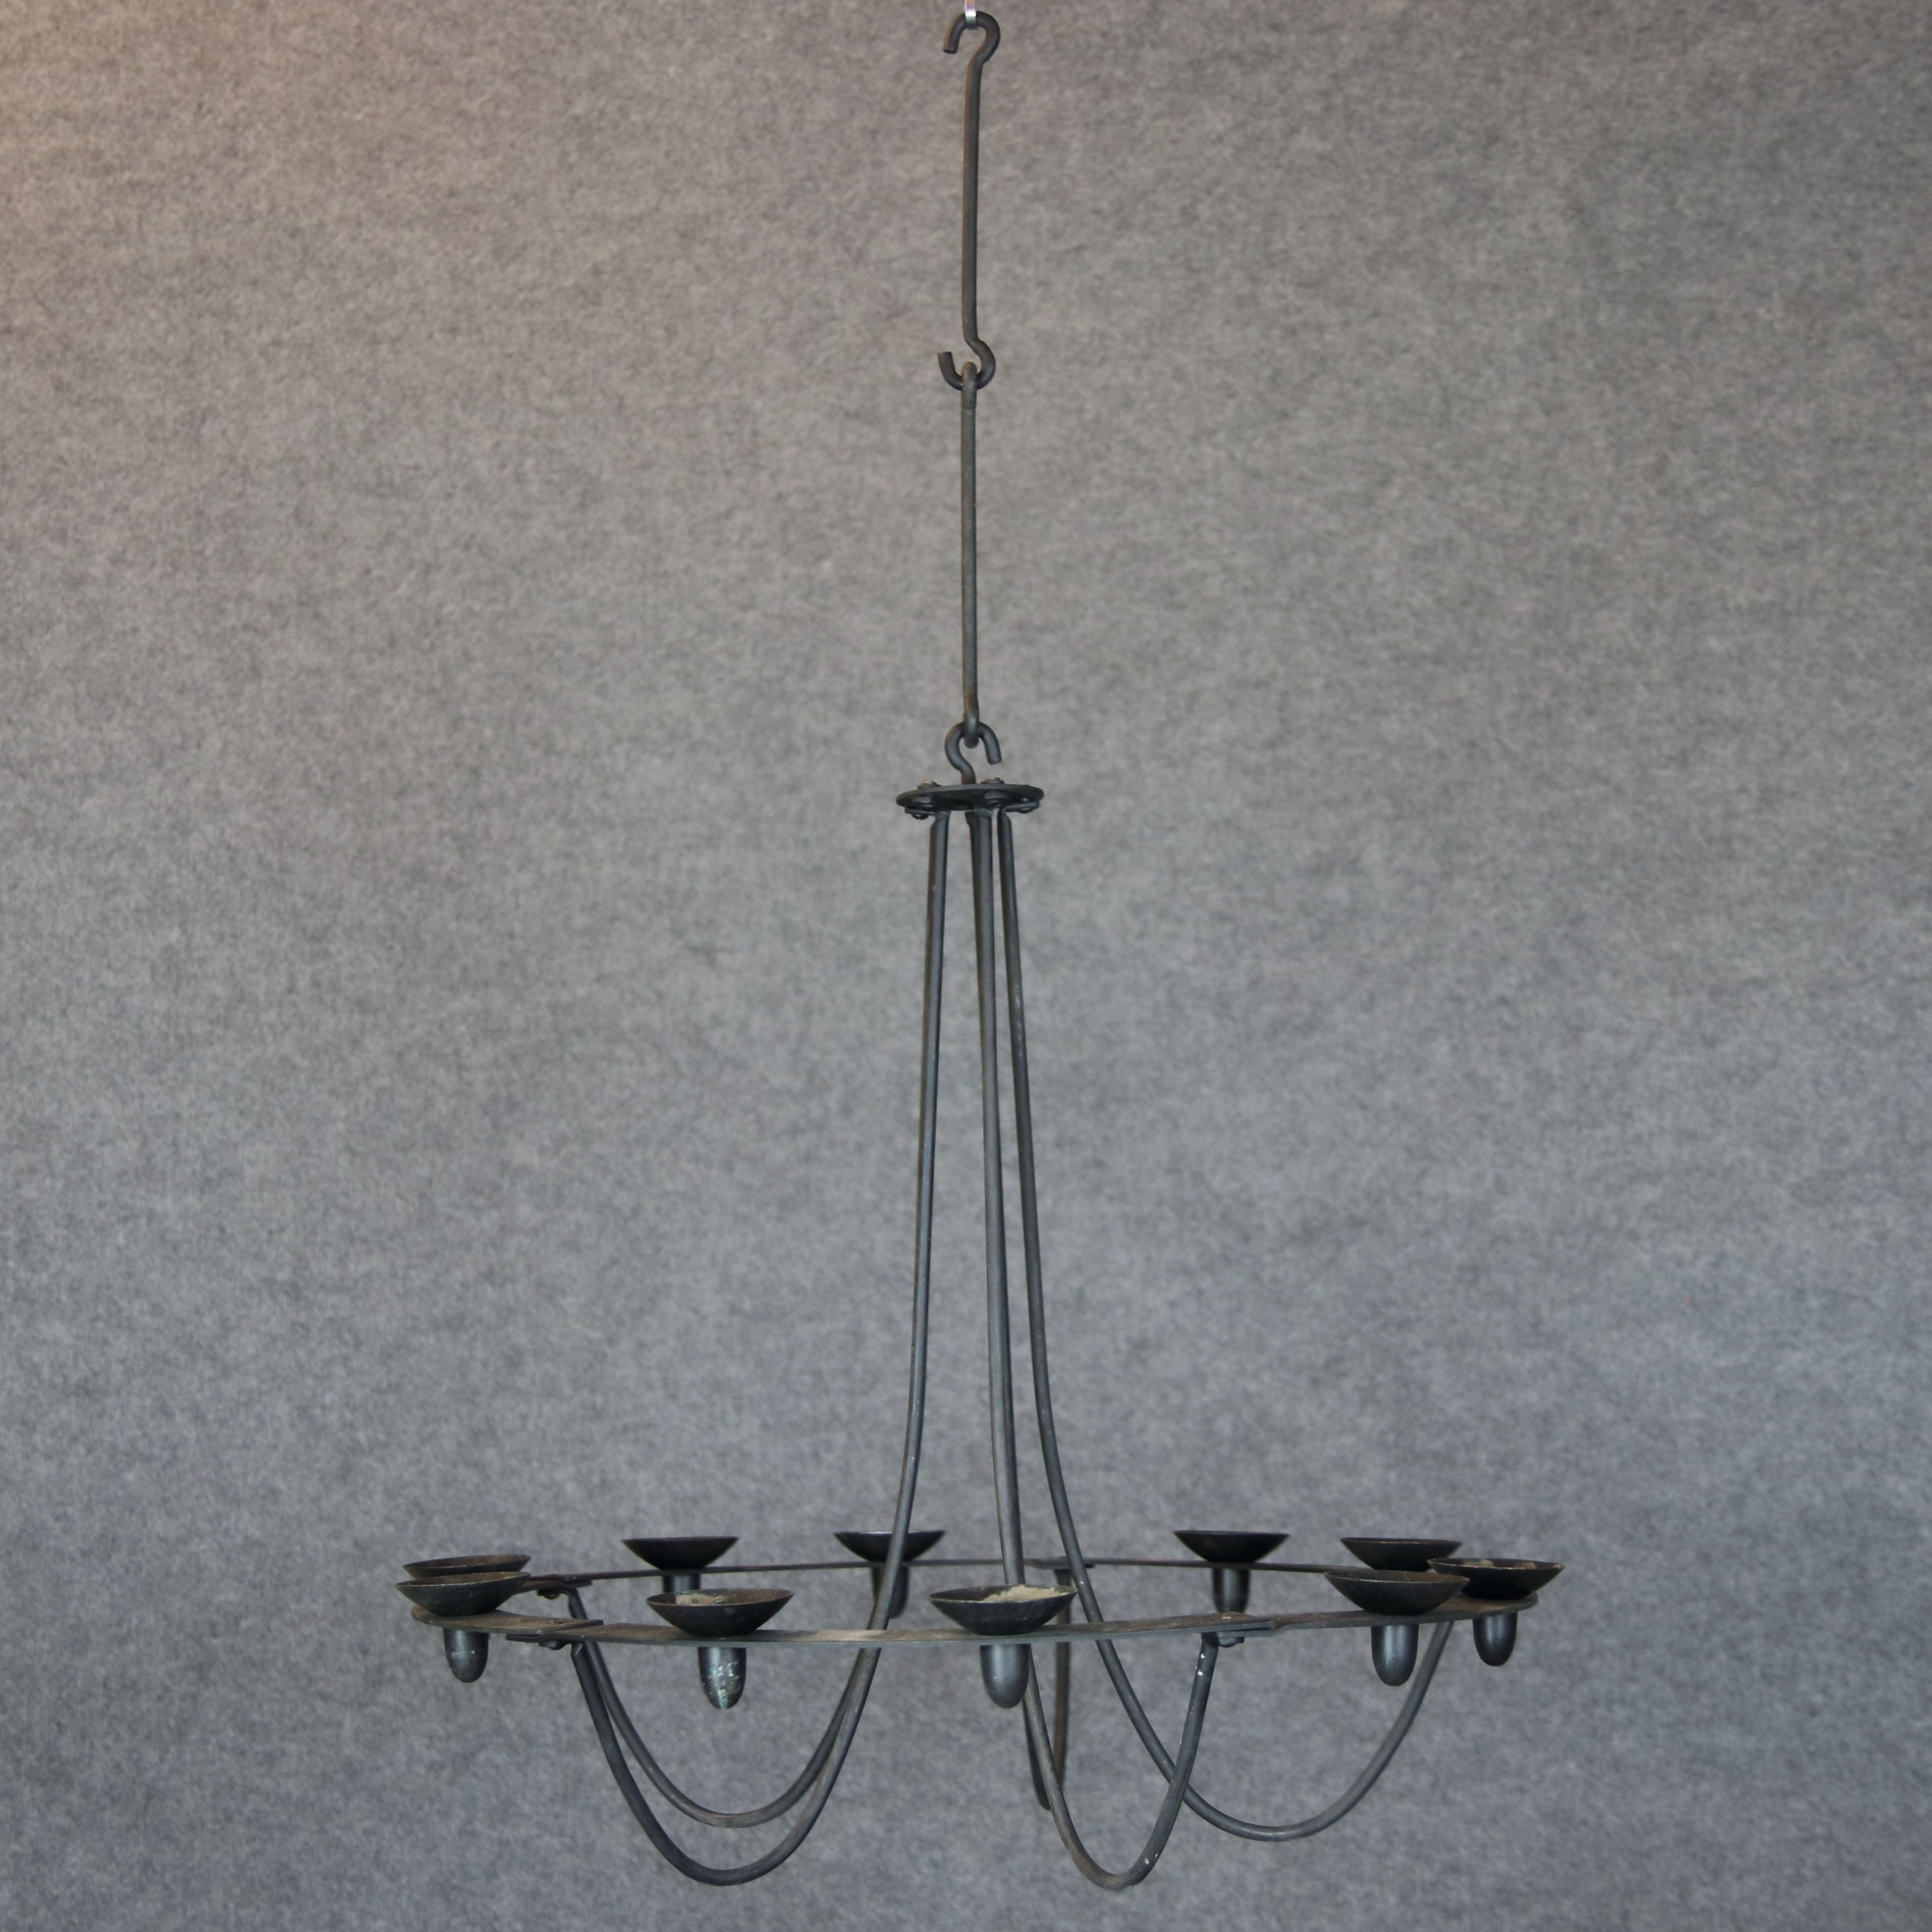 Candelabra Wrought Iron 10 Candle Holders Contemporary Lighting Lamps Ceiling Lights Auctionet